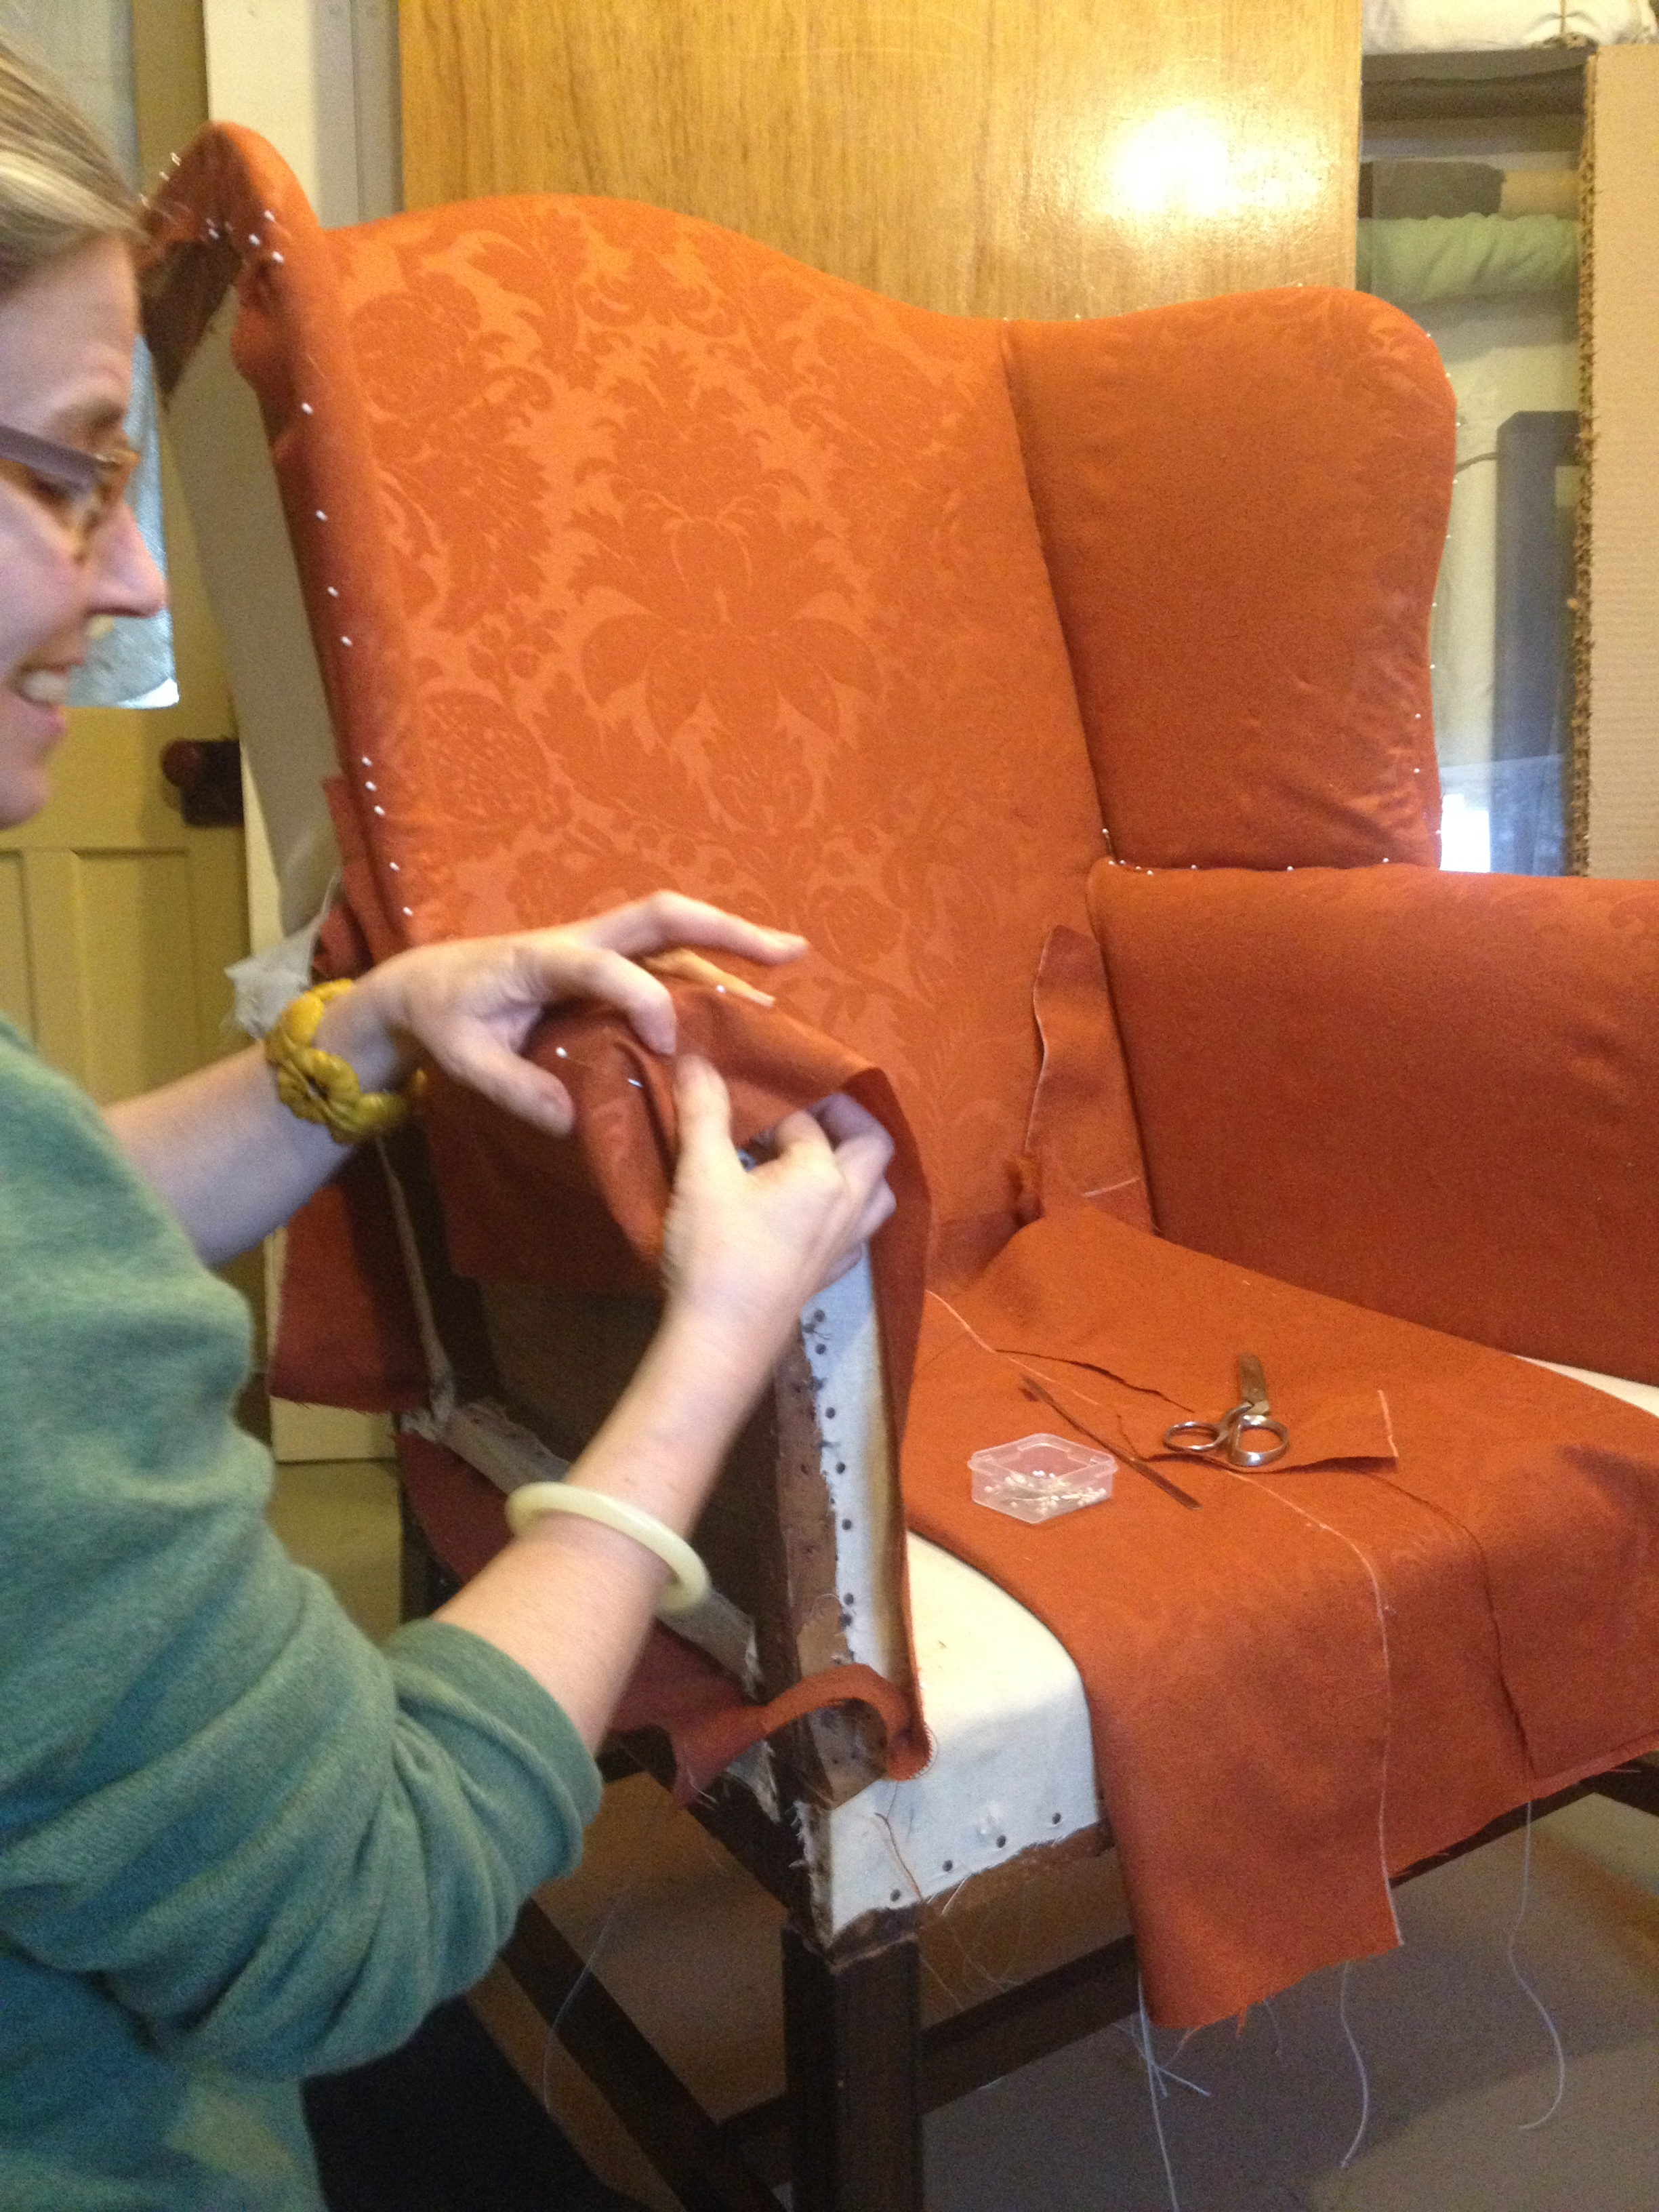 Gwen Spicer of Spicer Art Conservation is a textile conservator and expert in the care of archeological, historic and antique textiles.